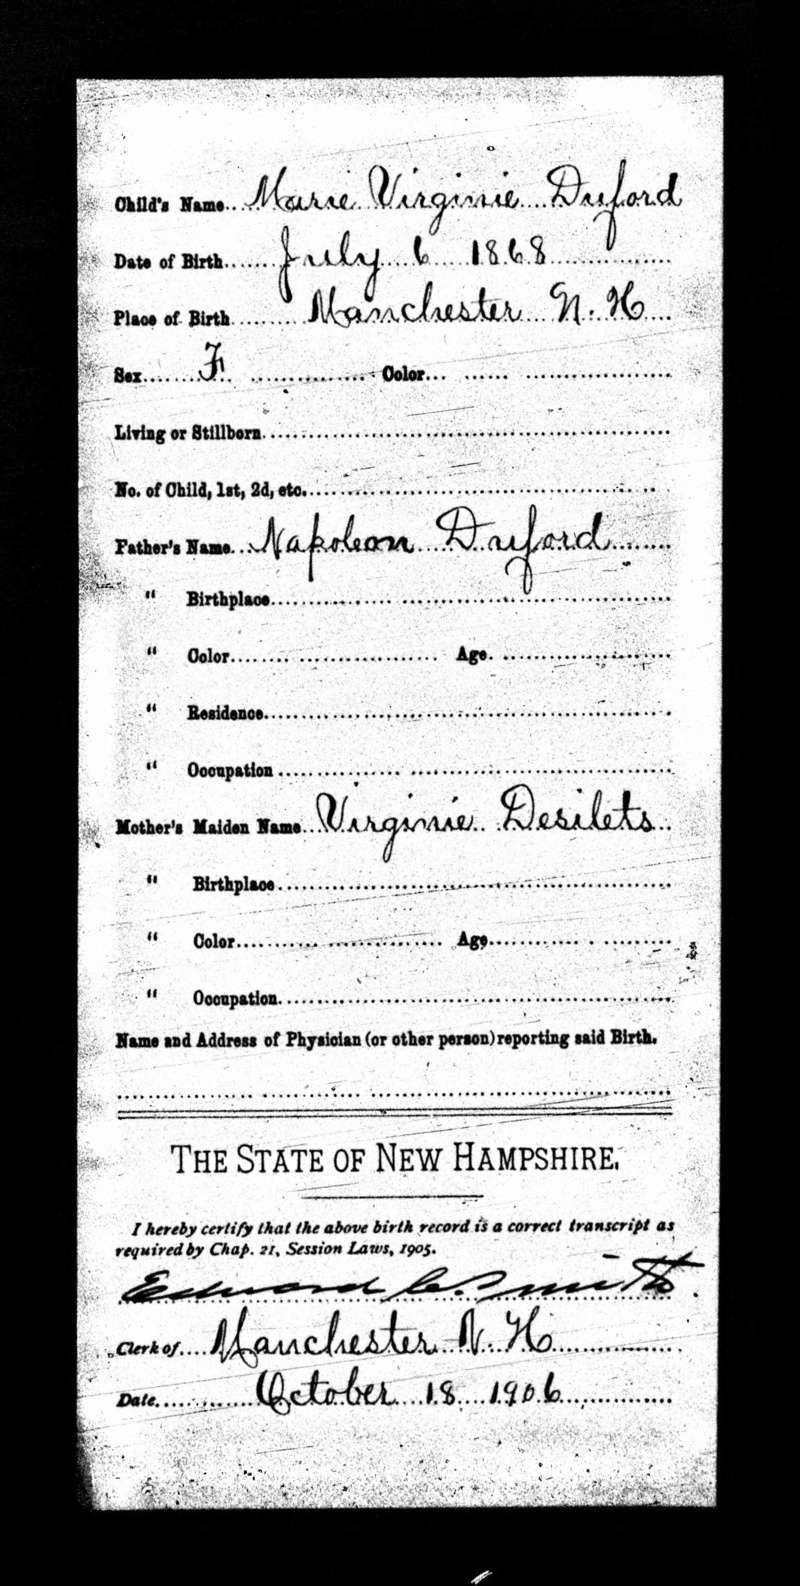 Lahaise/Duford, mariage Ste-Anne, Manchesater,  NH USA - Page 2 Virgin12